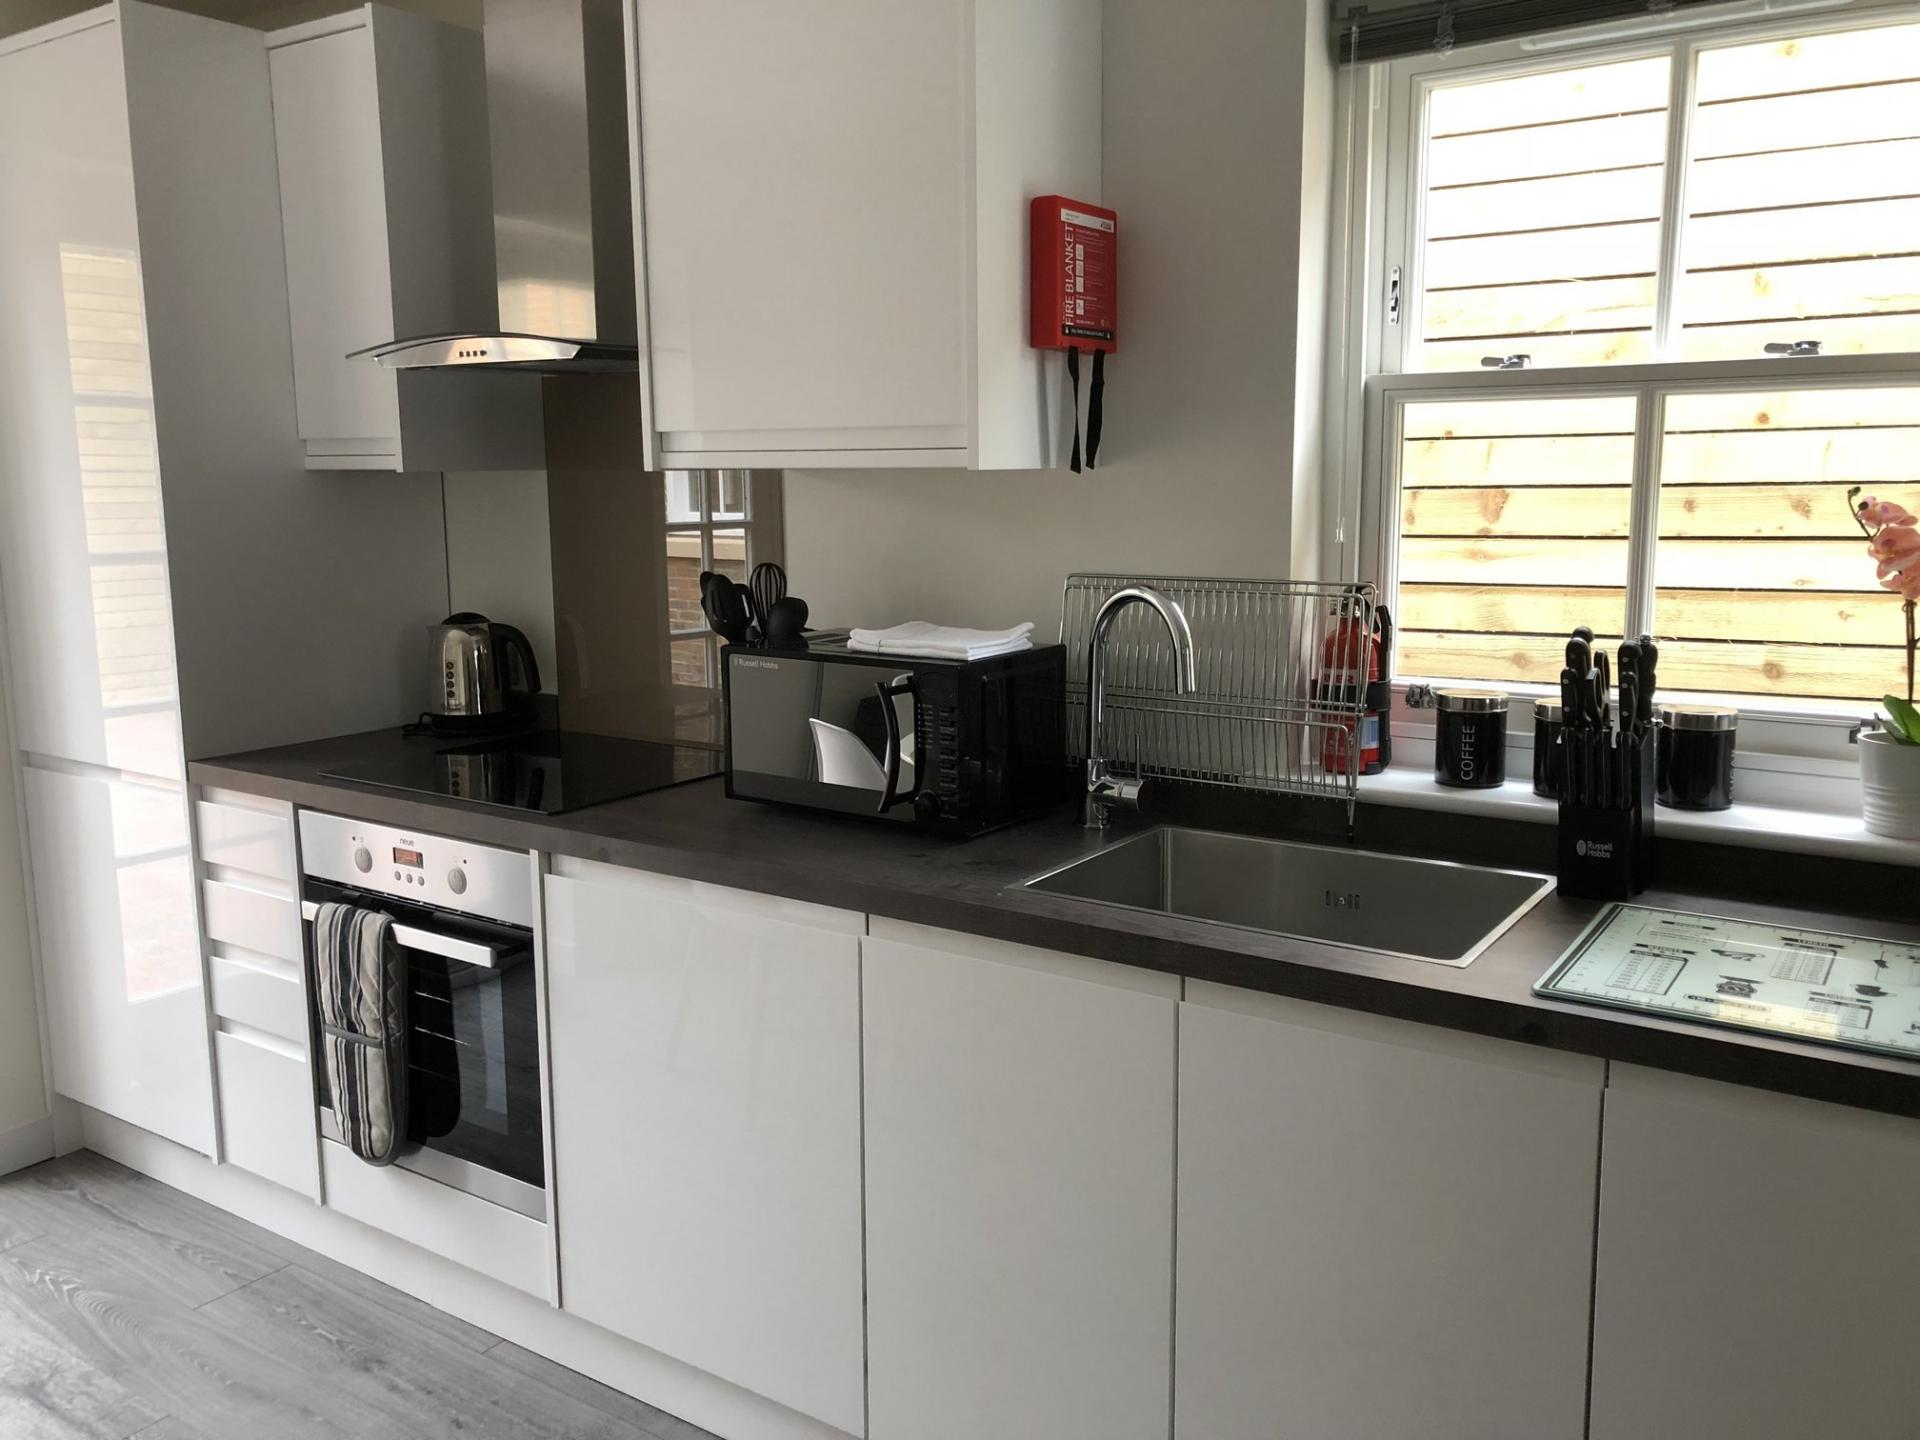 Kitchen at Derbyshire House, St Albans - Citybase Apartments